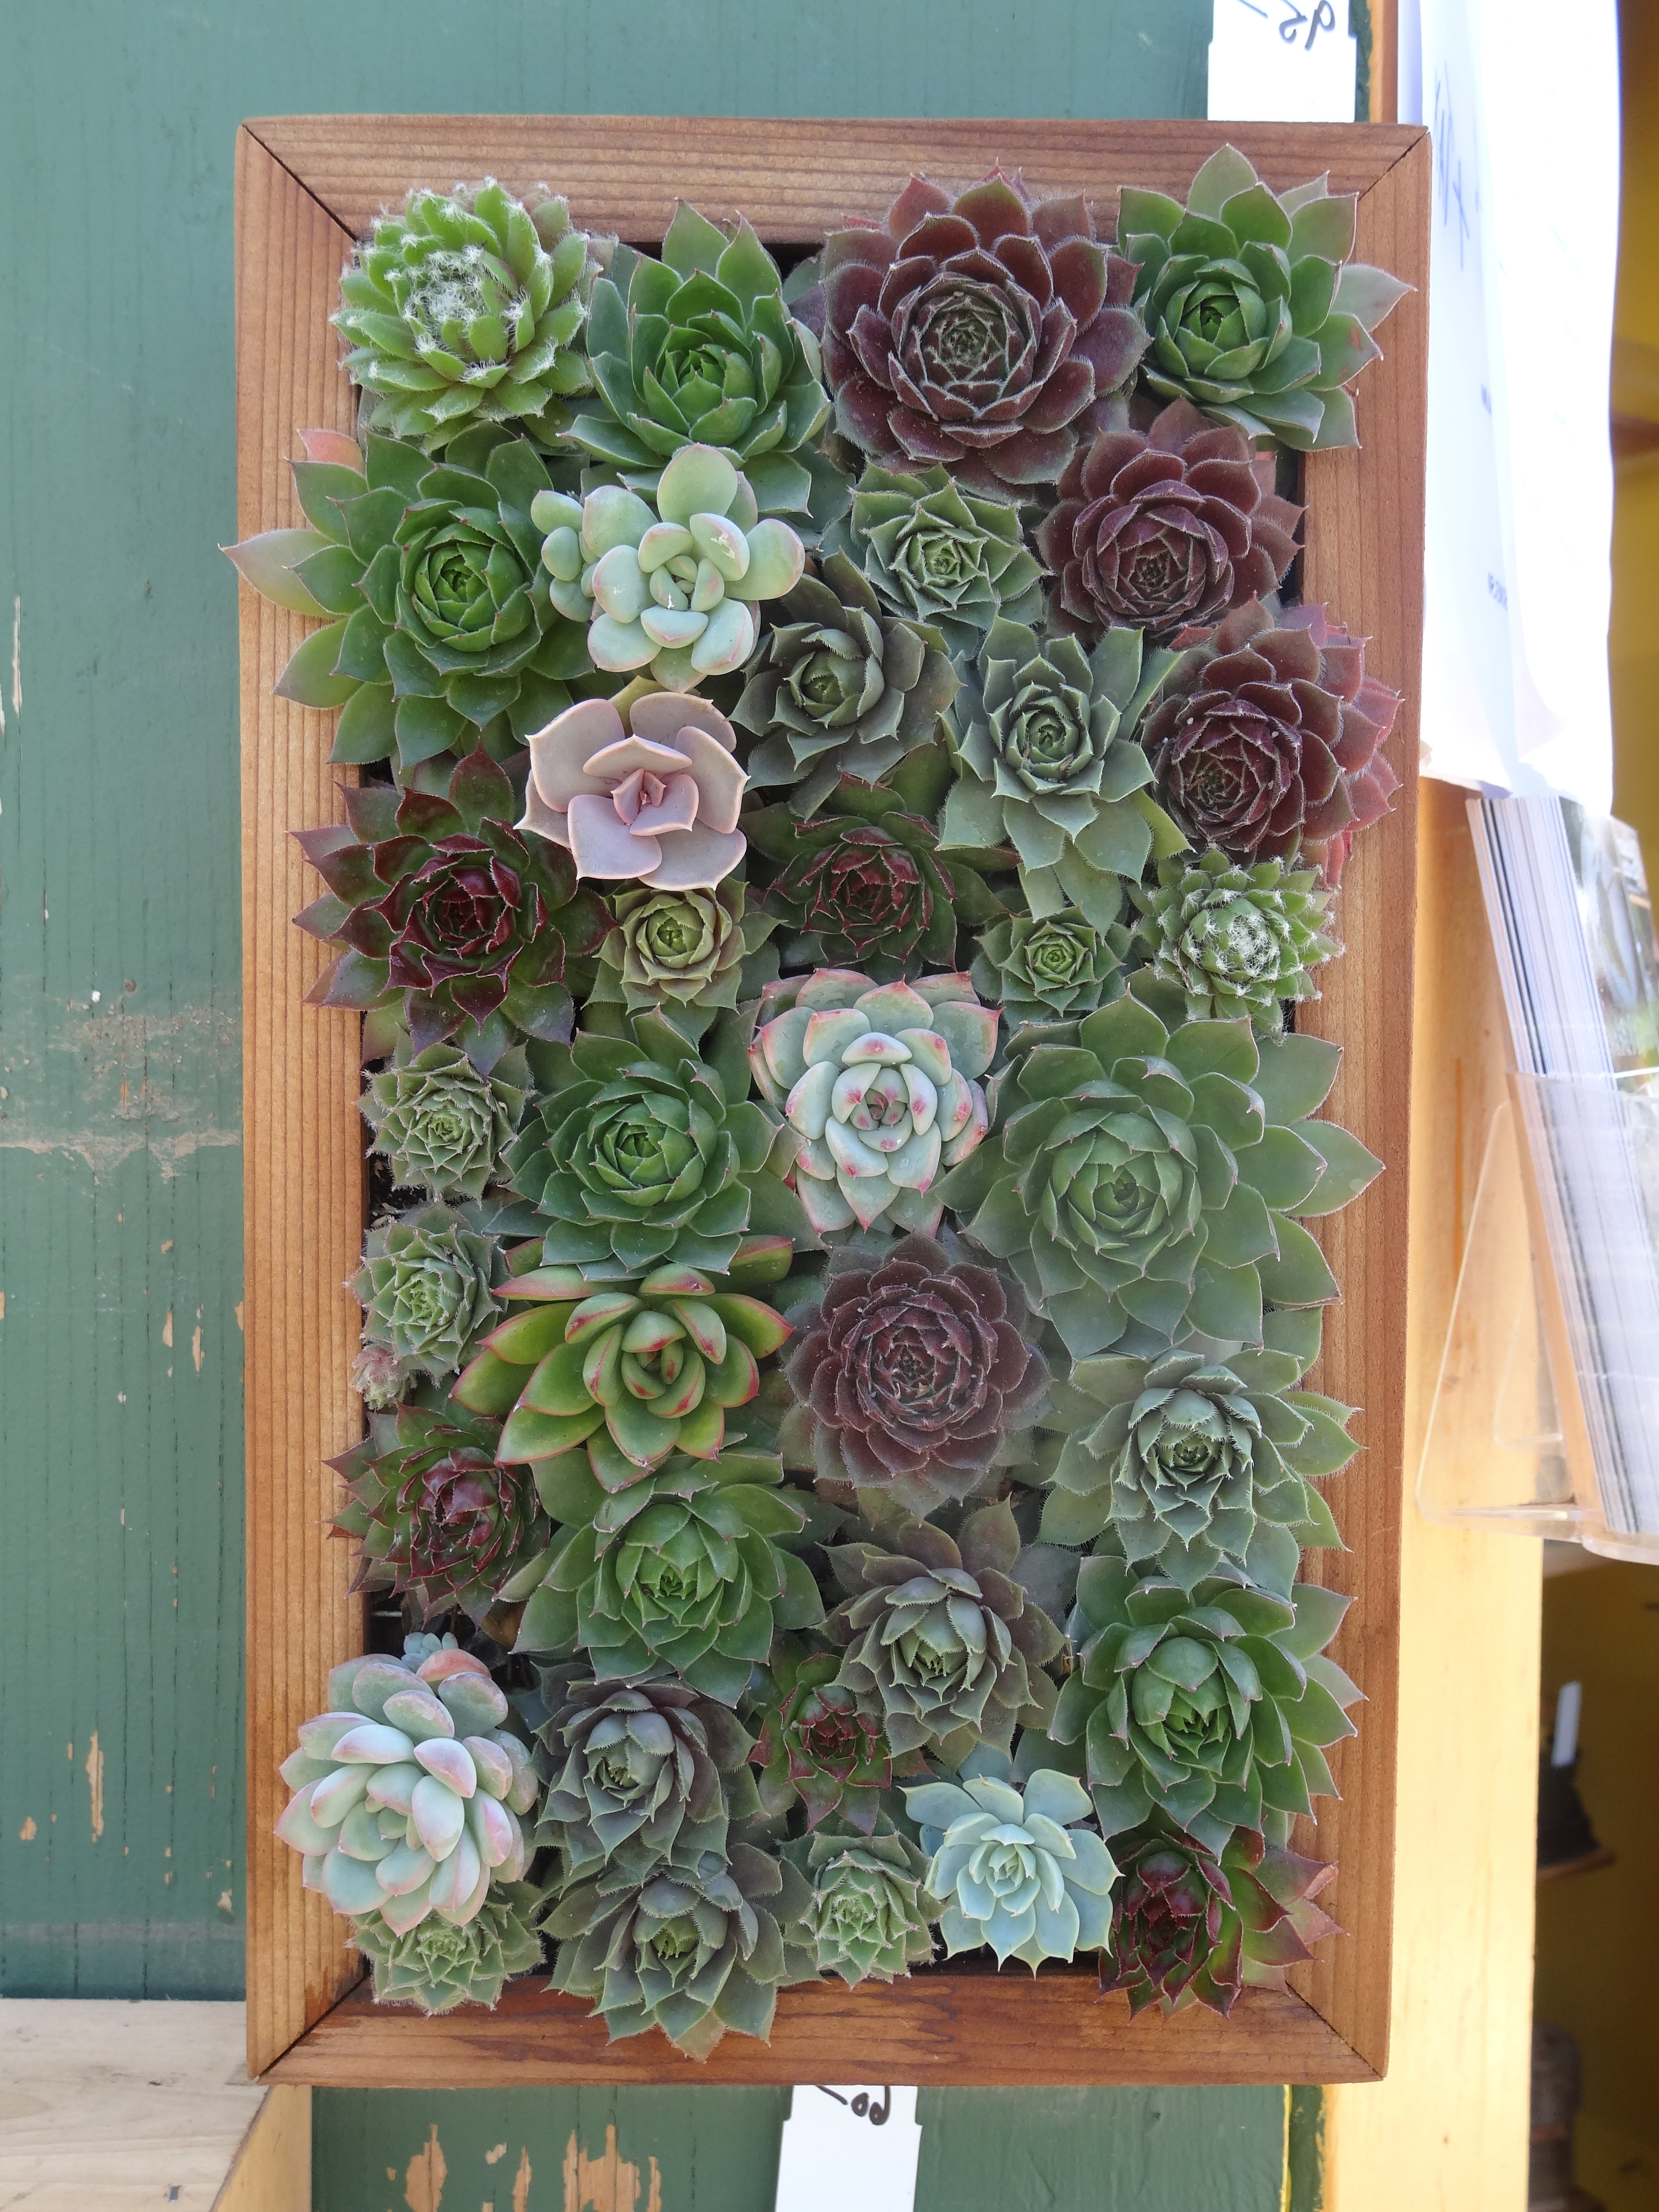 40 Lovely Ideas Succulent Wall Art (Gallery 12 of 15)